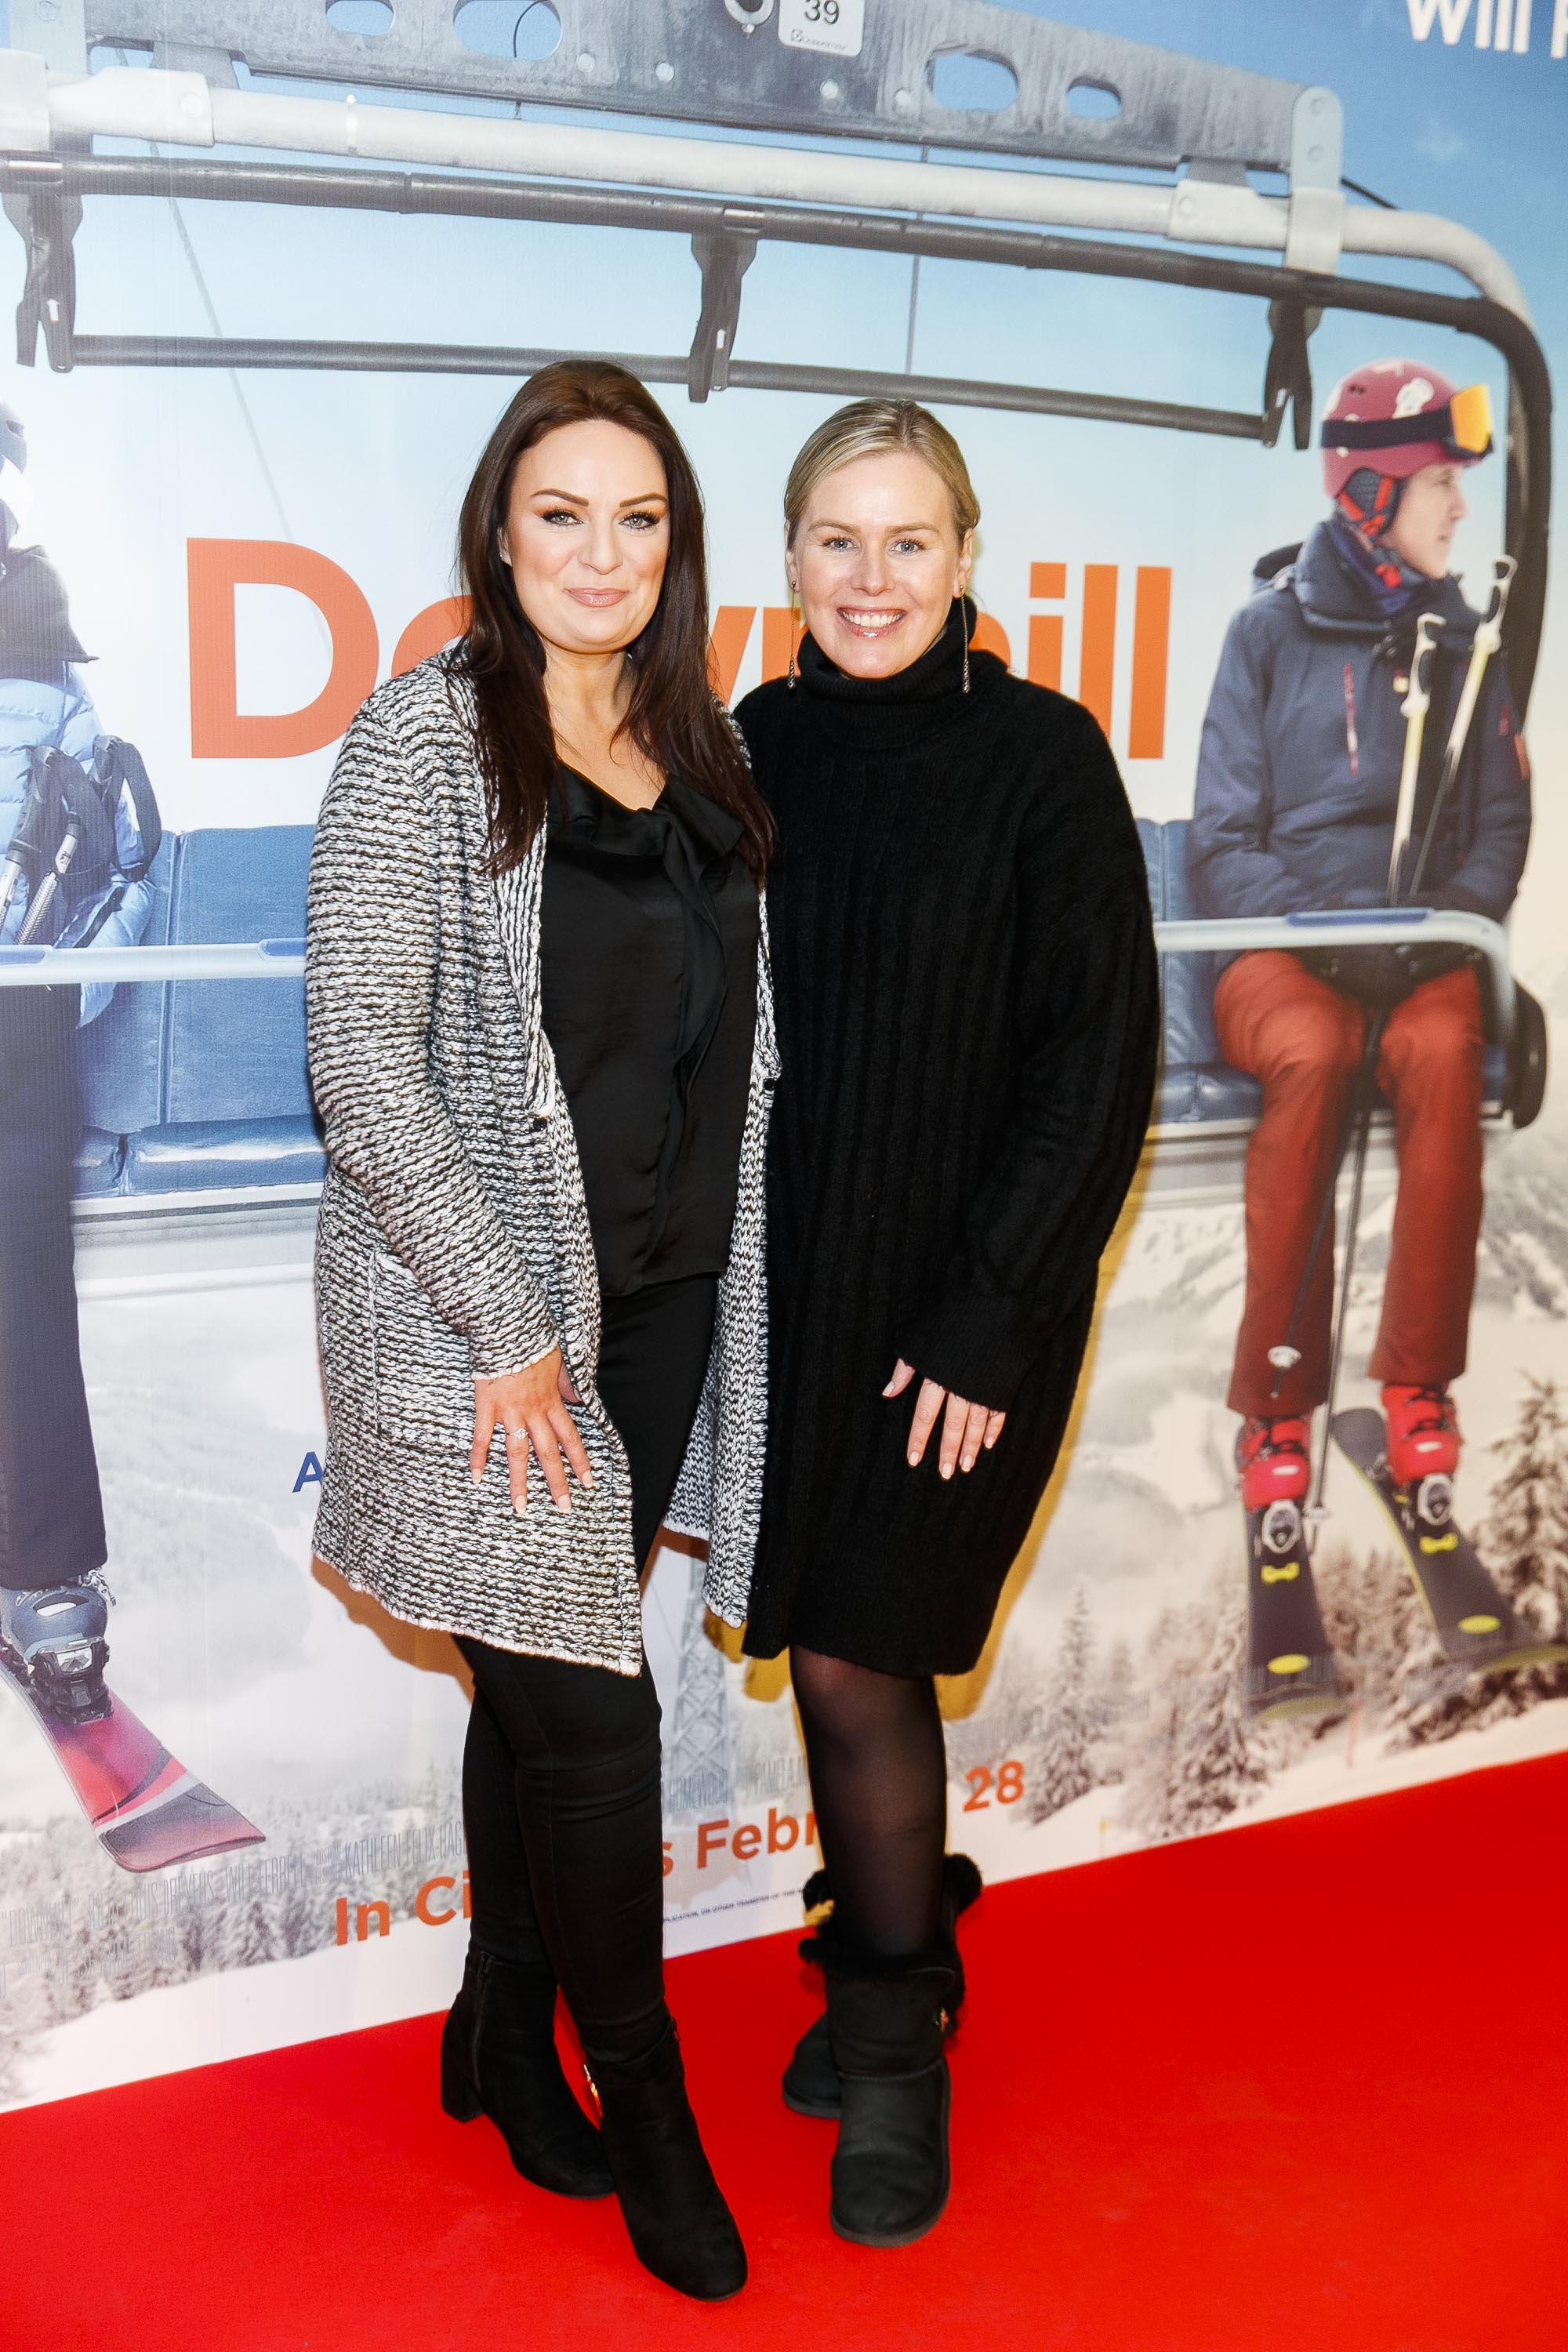 Ciara McCahey and Caitriona O'Connor pictured at a special preview screening of Downhill at the Light House Cinema, Dublin. Picture: Andres Poveda.